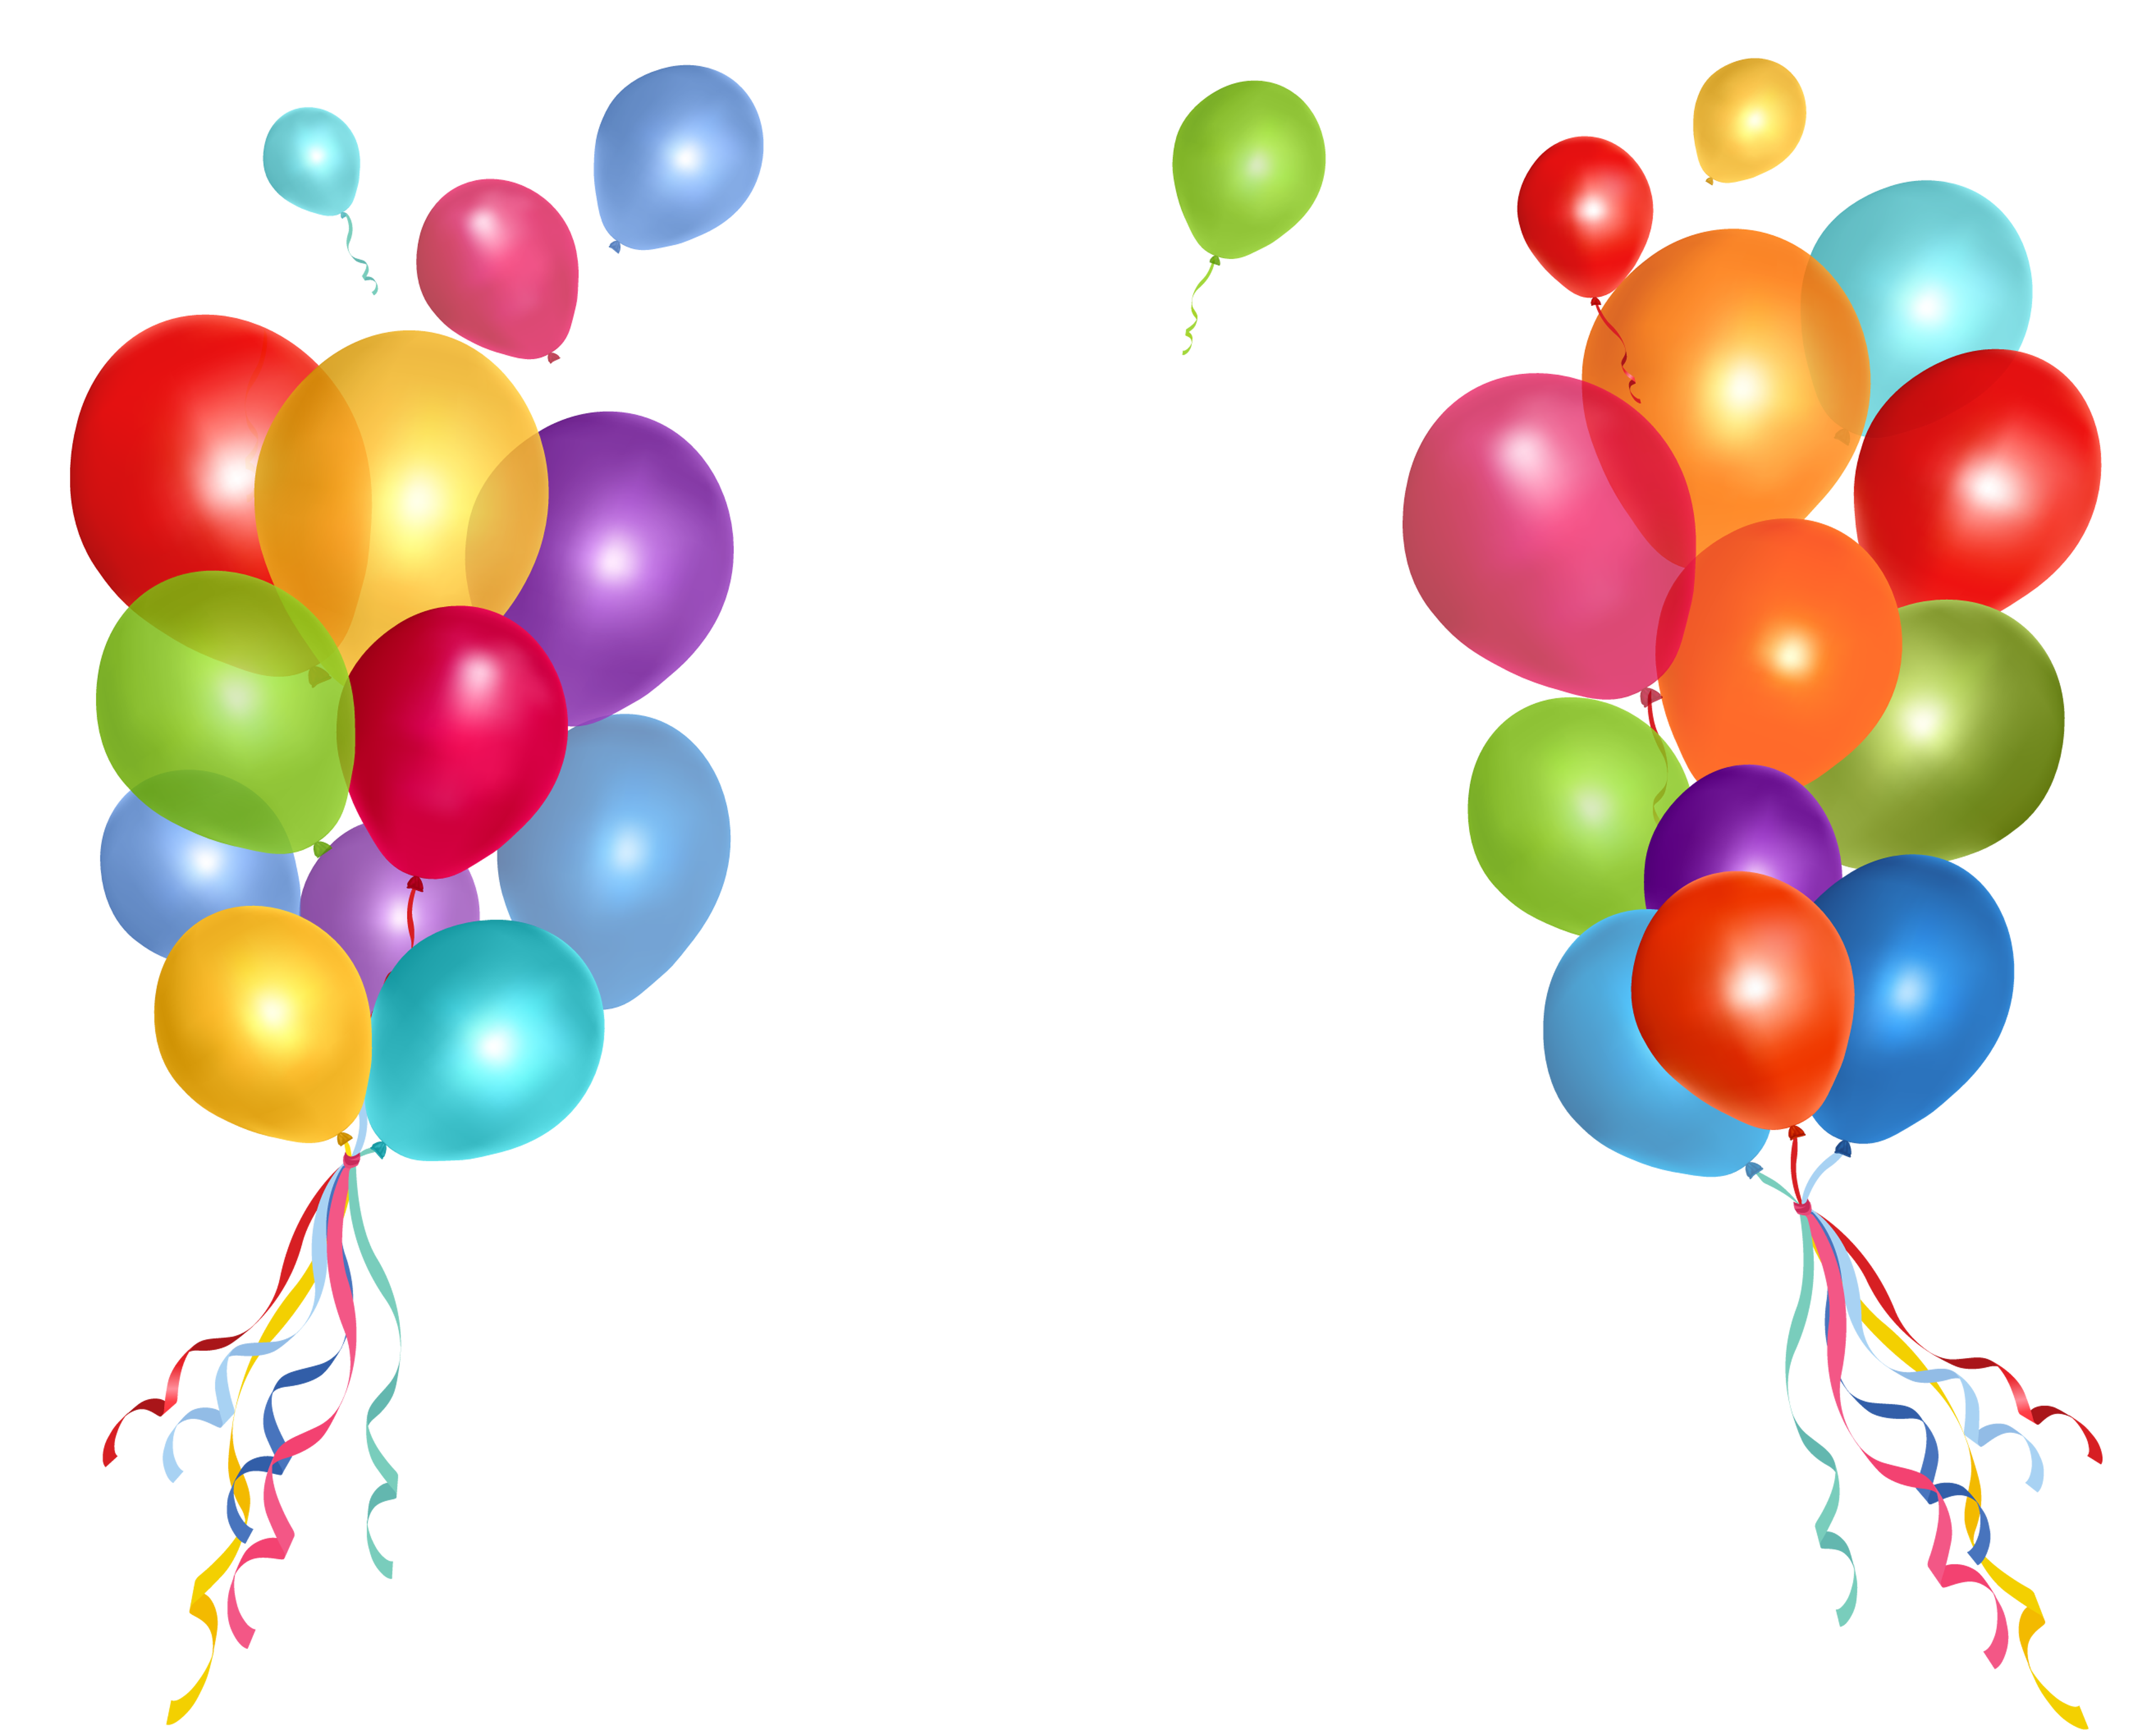 Party balloon clipart clipart free library Party balloon clipart clipart images gallery for free ... clipart free library